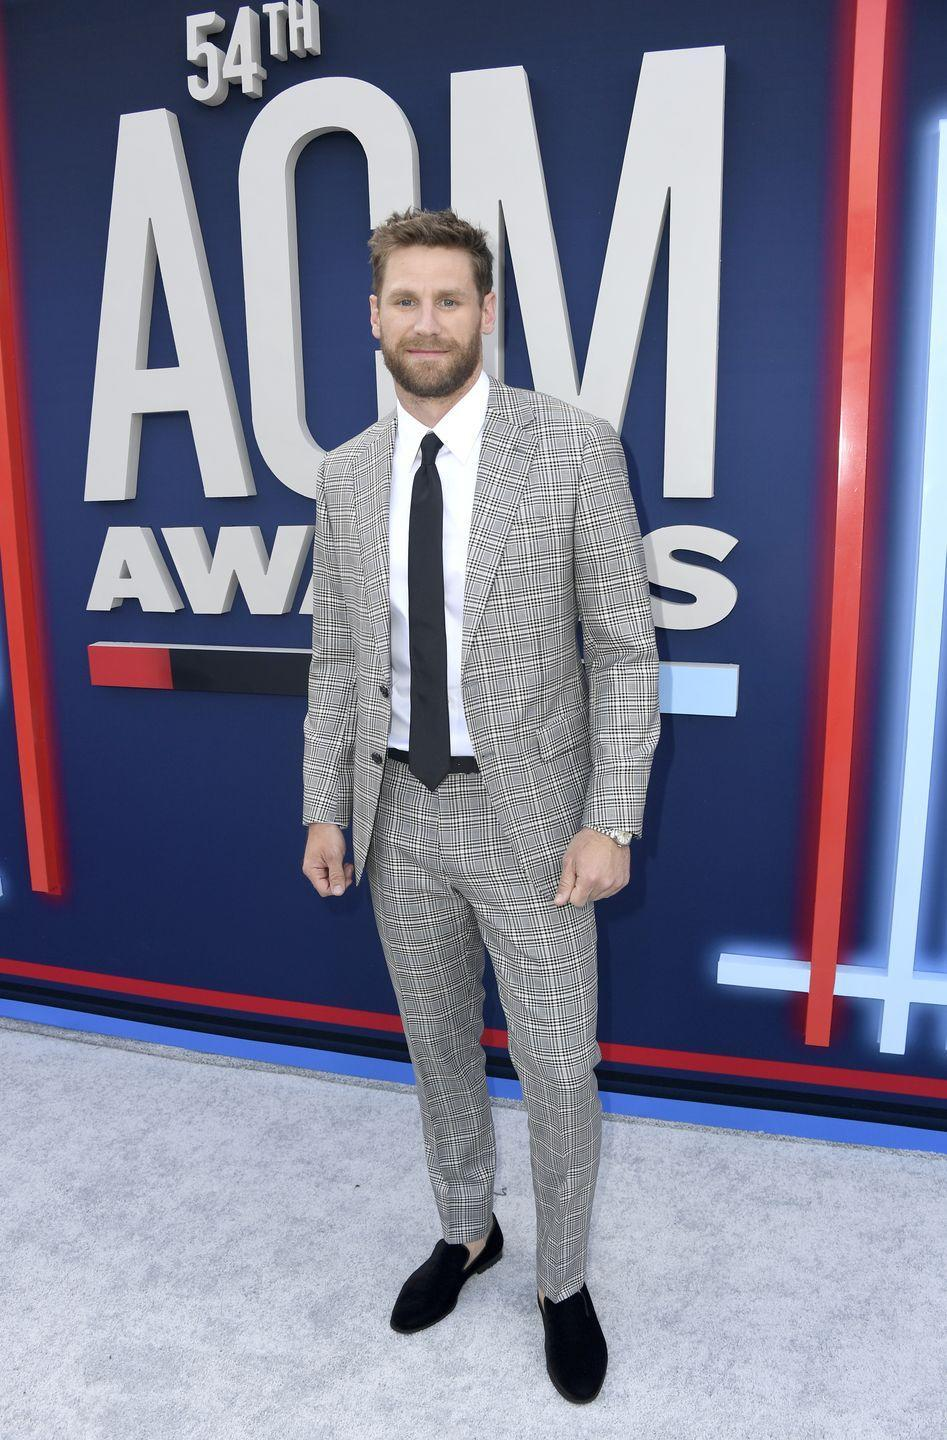 "<p>Before Chase Rice gained fame on country music radio, he was a contestant on <em>Survivor: Nicaragua. </em>In 2010, he was the runner-up, earning a $100,000 prize. He co-write Florida Georgia Line's hit song ""Cruise"" and then started putting out chart toppers of his own. Rice's 2019 hit single ""Eyes on You"" is his first No. 1 on country radio.</p>"